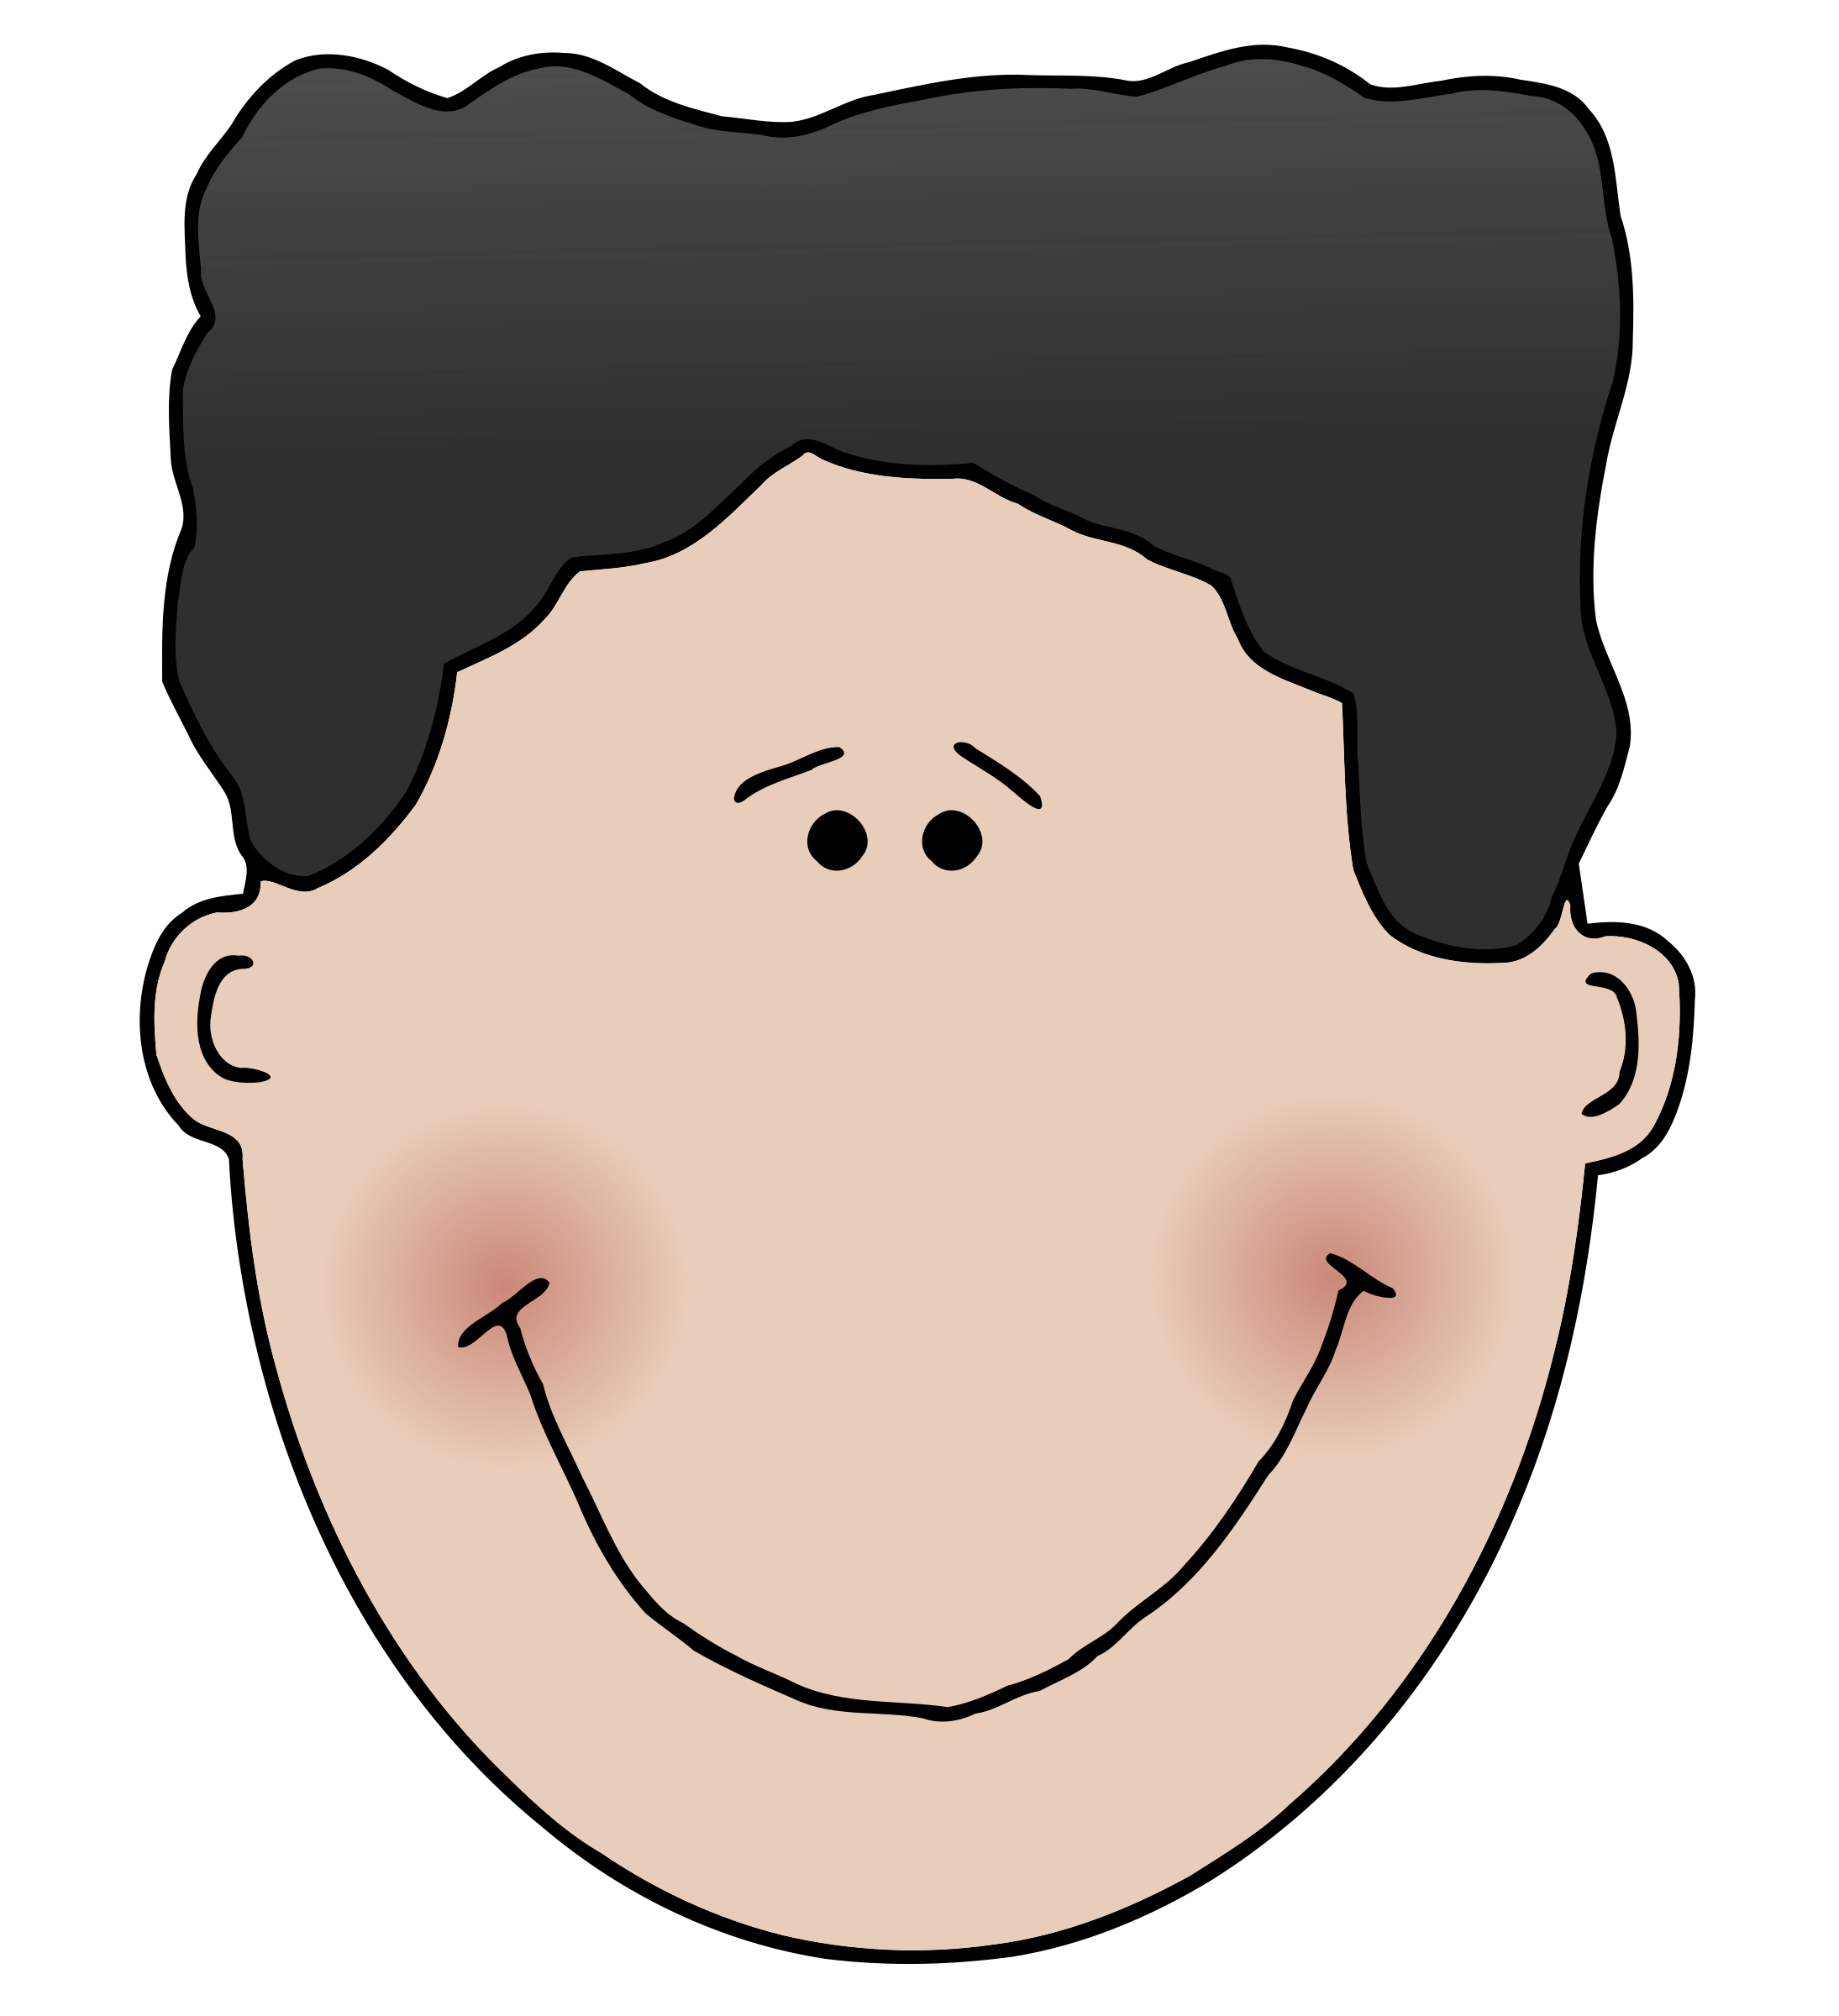 Son clipart face to face. Boyface big image png